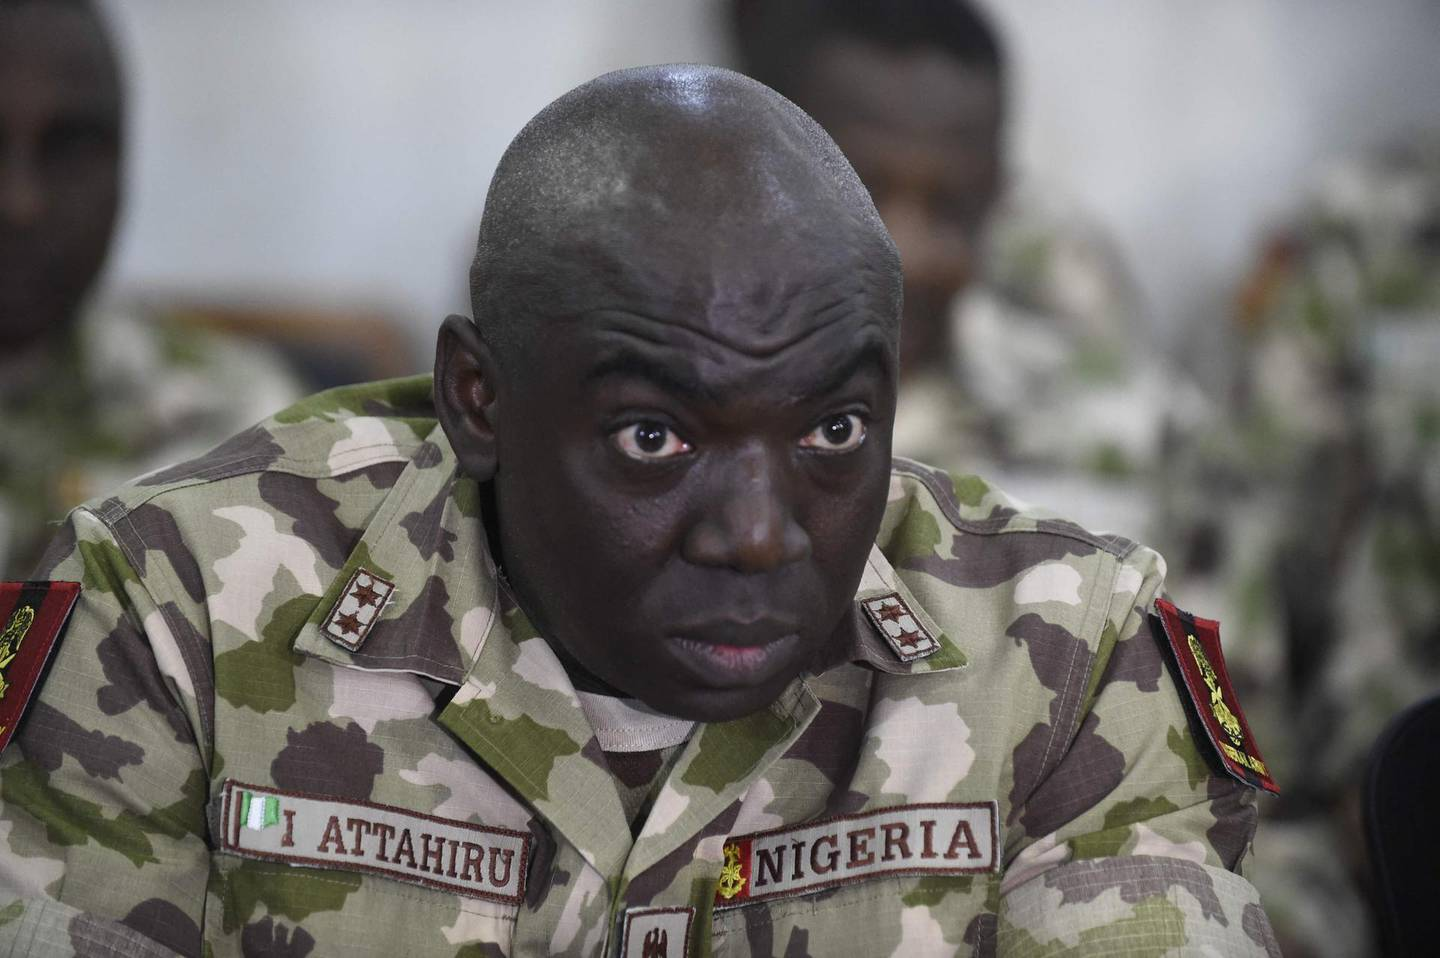 (FILES) In this file photo taken on October 04, 2017 Commander of the Operation Lafiya Dole Major General Ibrahim Attahiru speaks at the army headquarters, in Maiduguri, Borno State in northcentral Nigeria.  Nigeria's top-ranking army commander General Ibrahim Attahiru was killed on on May 21, 2021 when his plane crashed in the country's north, an air force spokesman said. Attahiru was appointed by President Muhammadu Buhari in January in a shakeup of the top military command to better fight surging violence and a more than decade-long jihadist insurgency. / AFP / PIUS UTOMI EKPEI